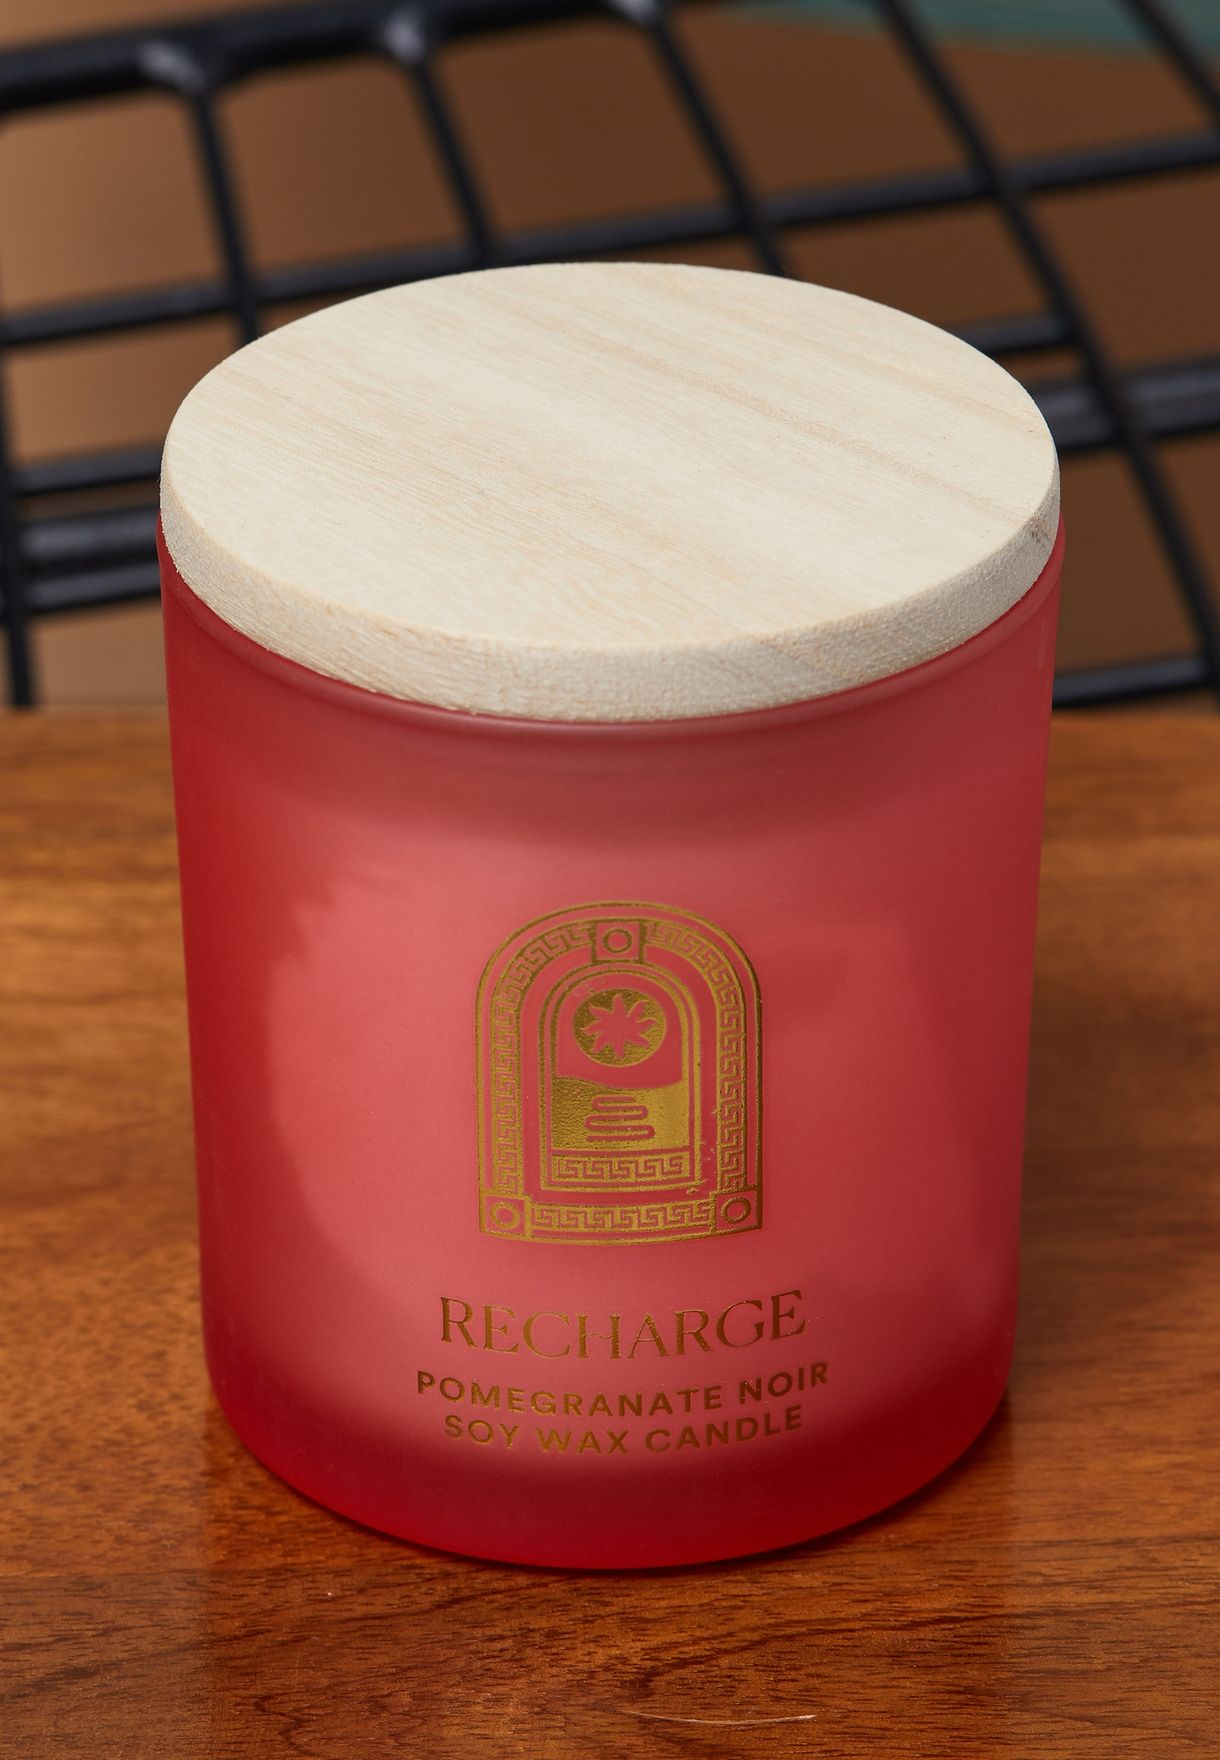 Pomegranate Noir Soy Wax Candle